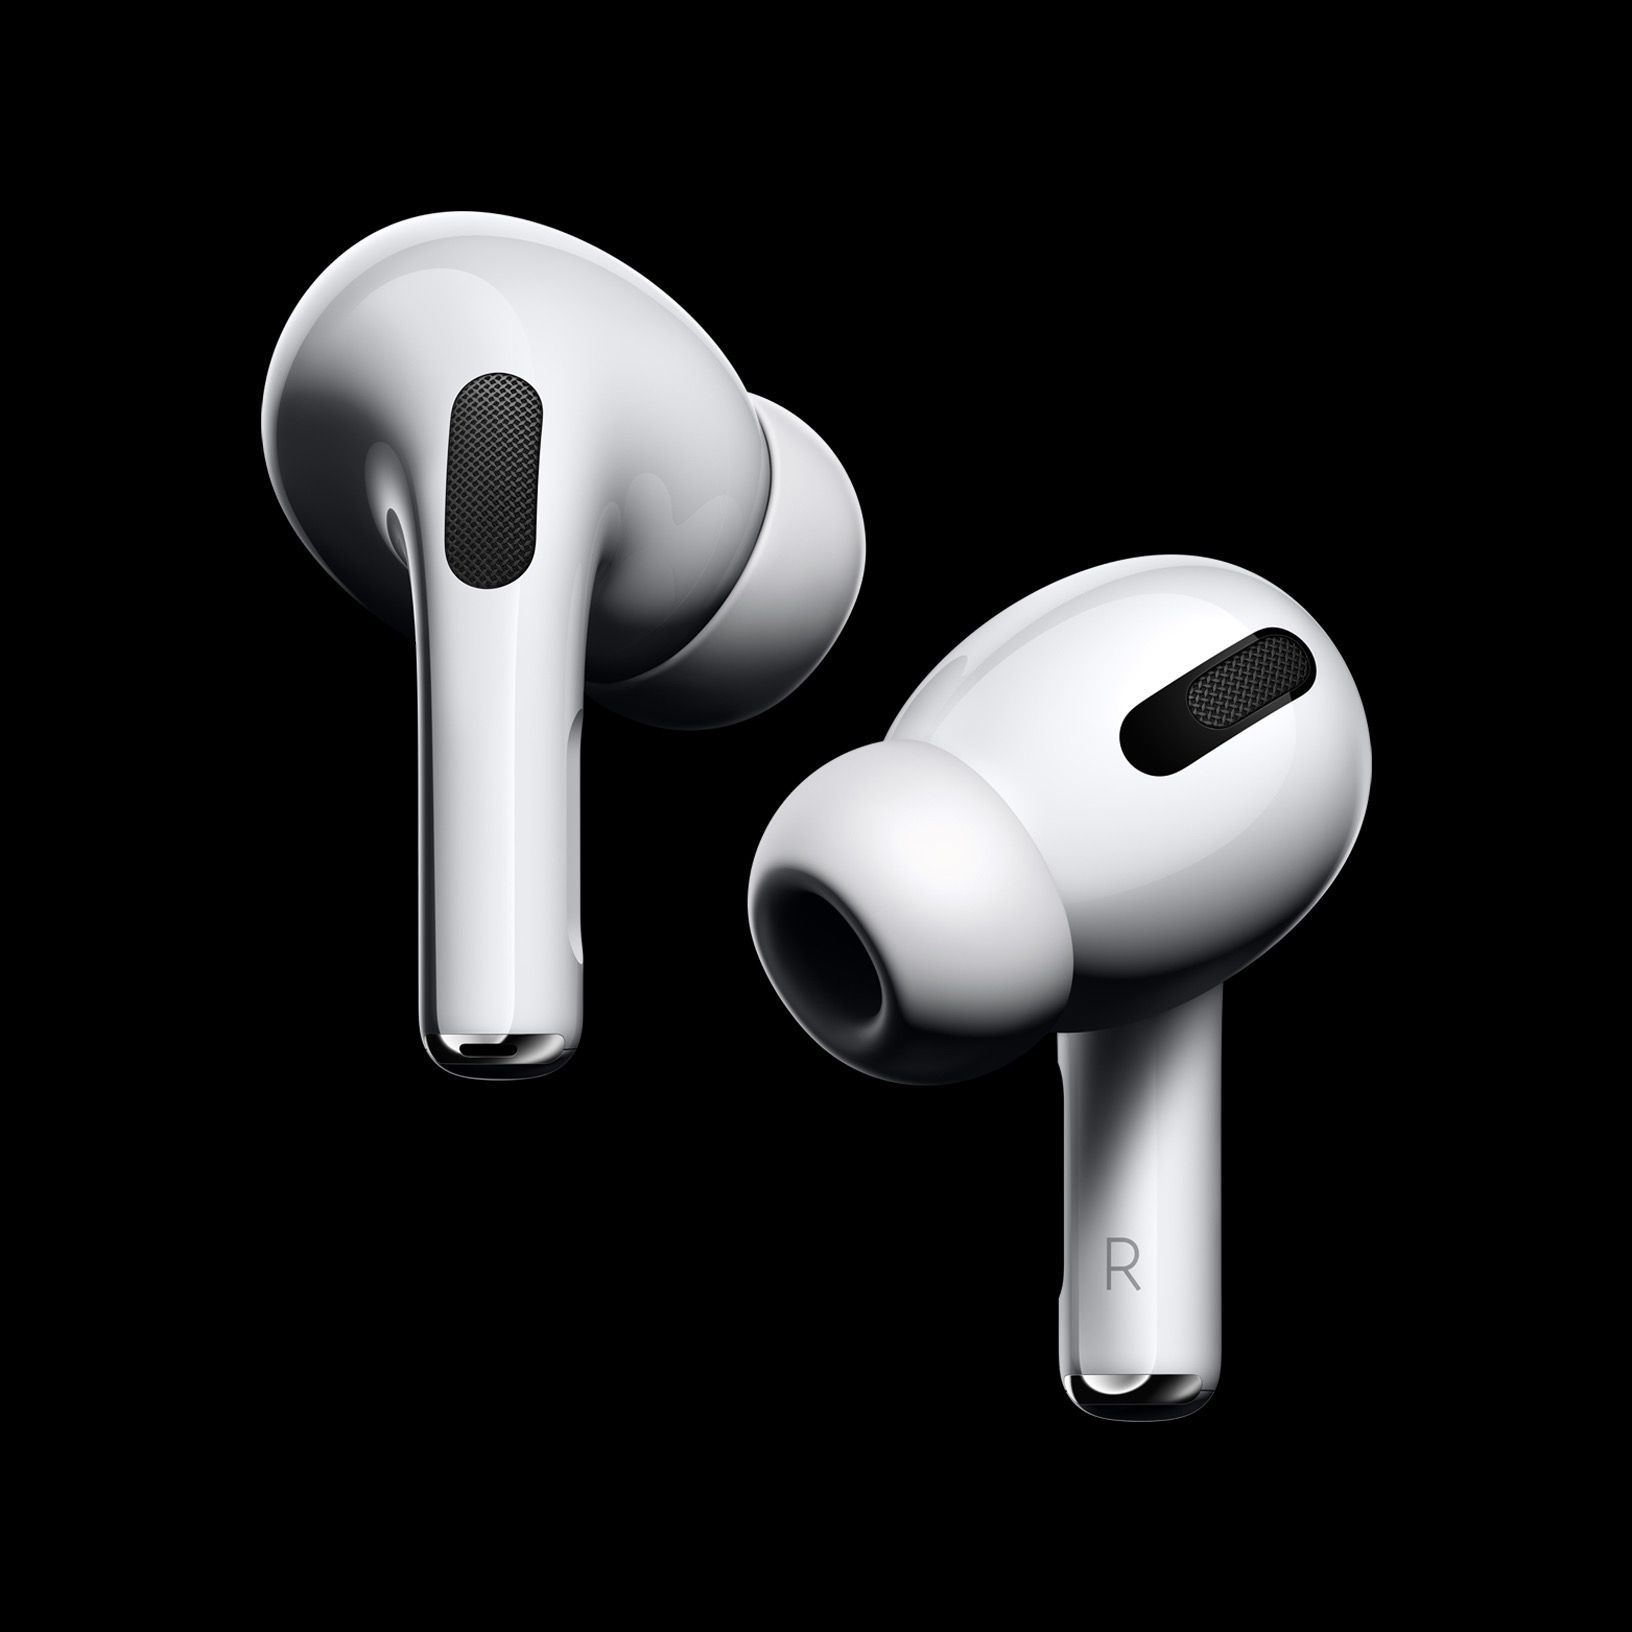 Airpod Pro Airpods Pro Noise Cancelling Earbuds